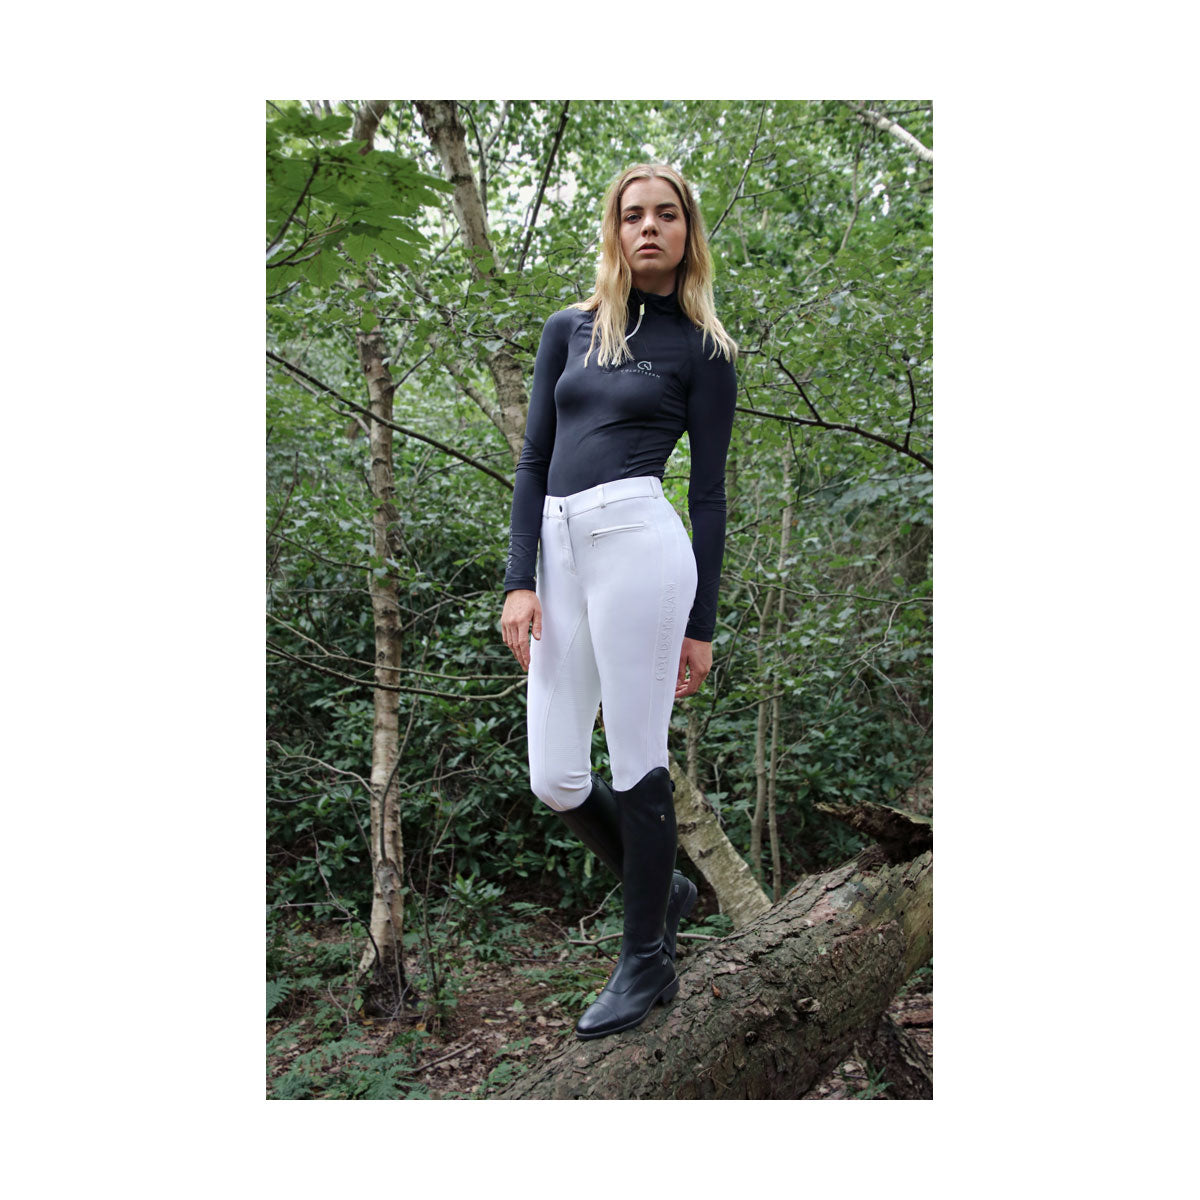 Coldstream Kilham Competition Breeches